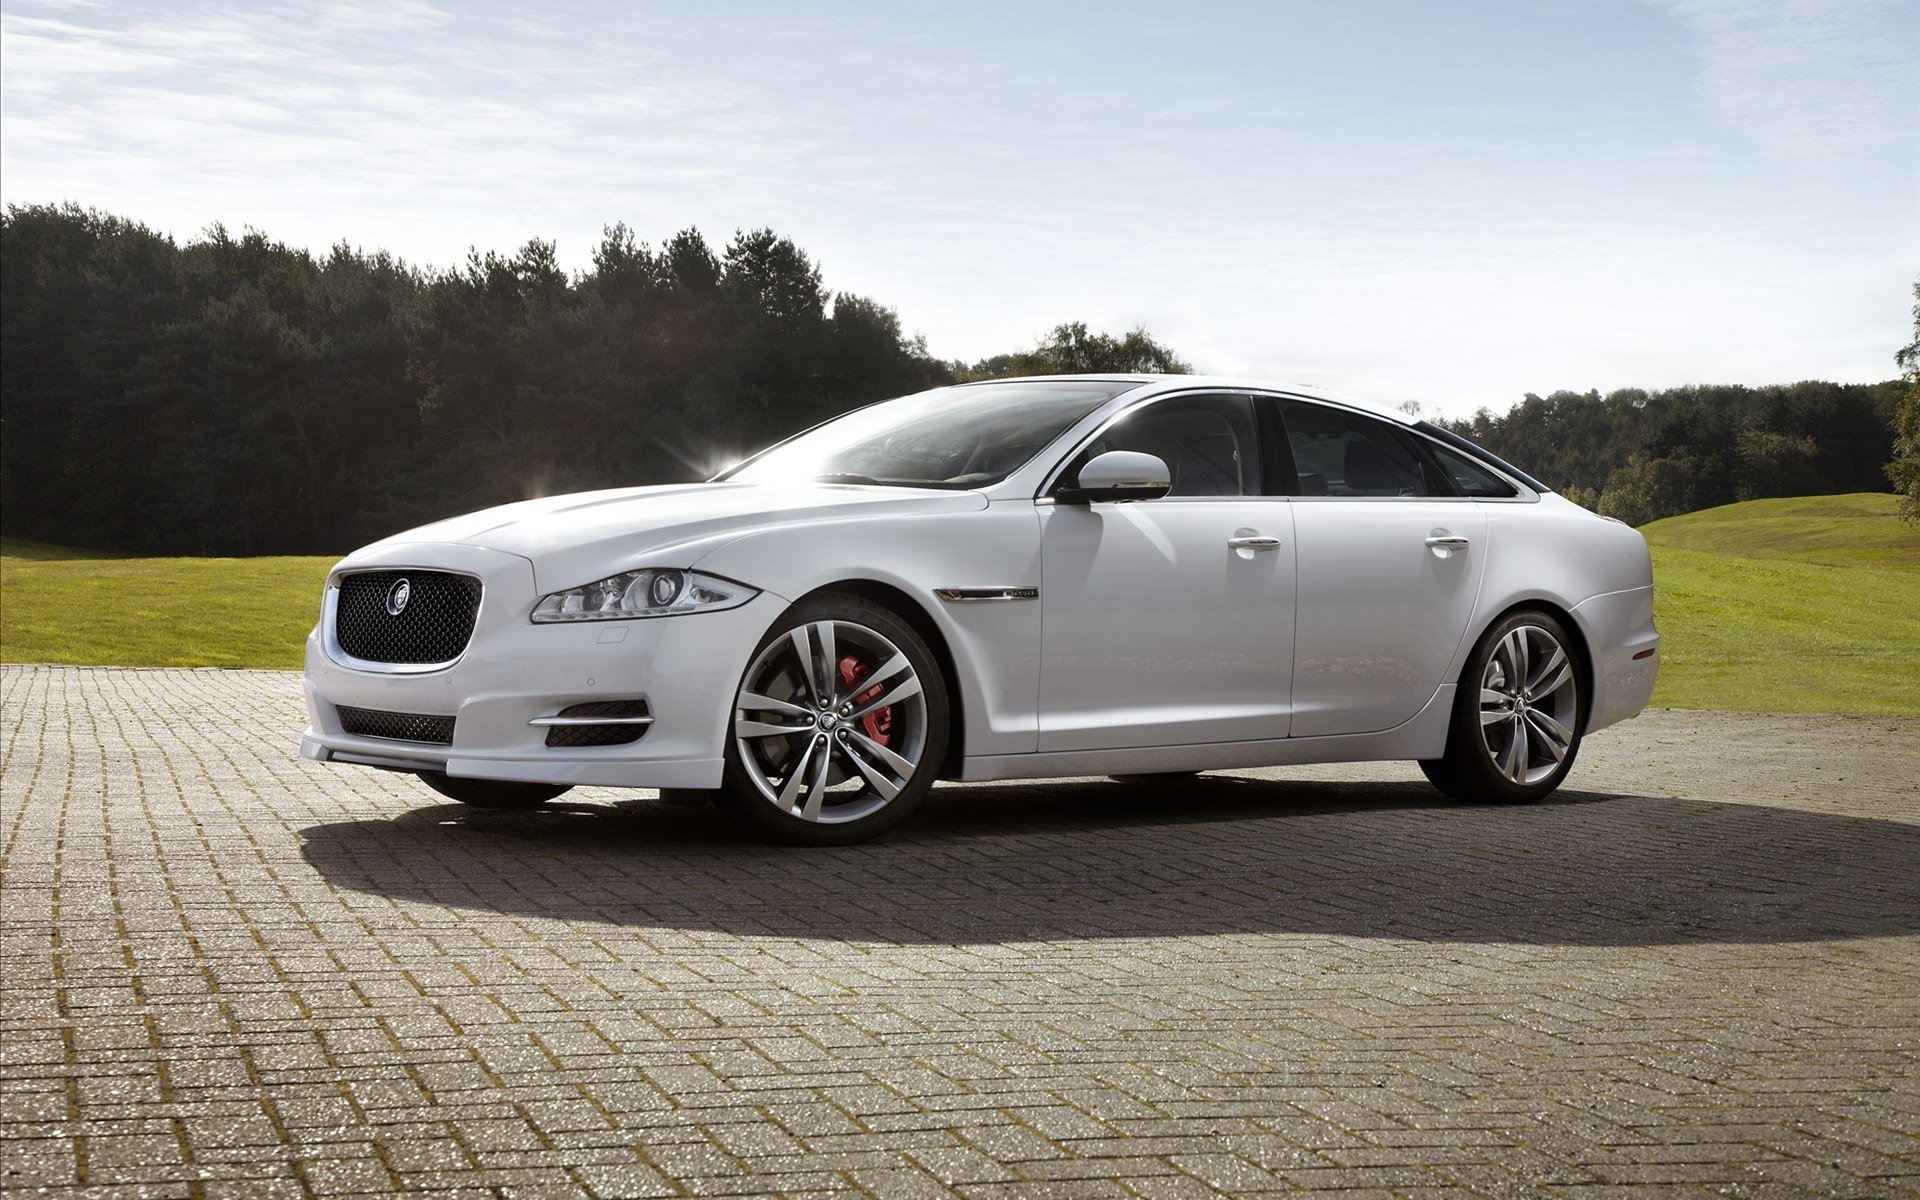 Latest Jaguar Car Wallpaper Wallpapers High Quality Download Free Free Download